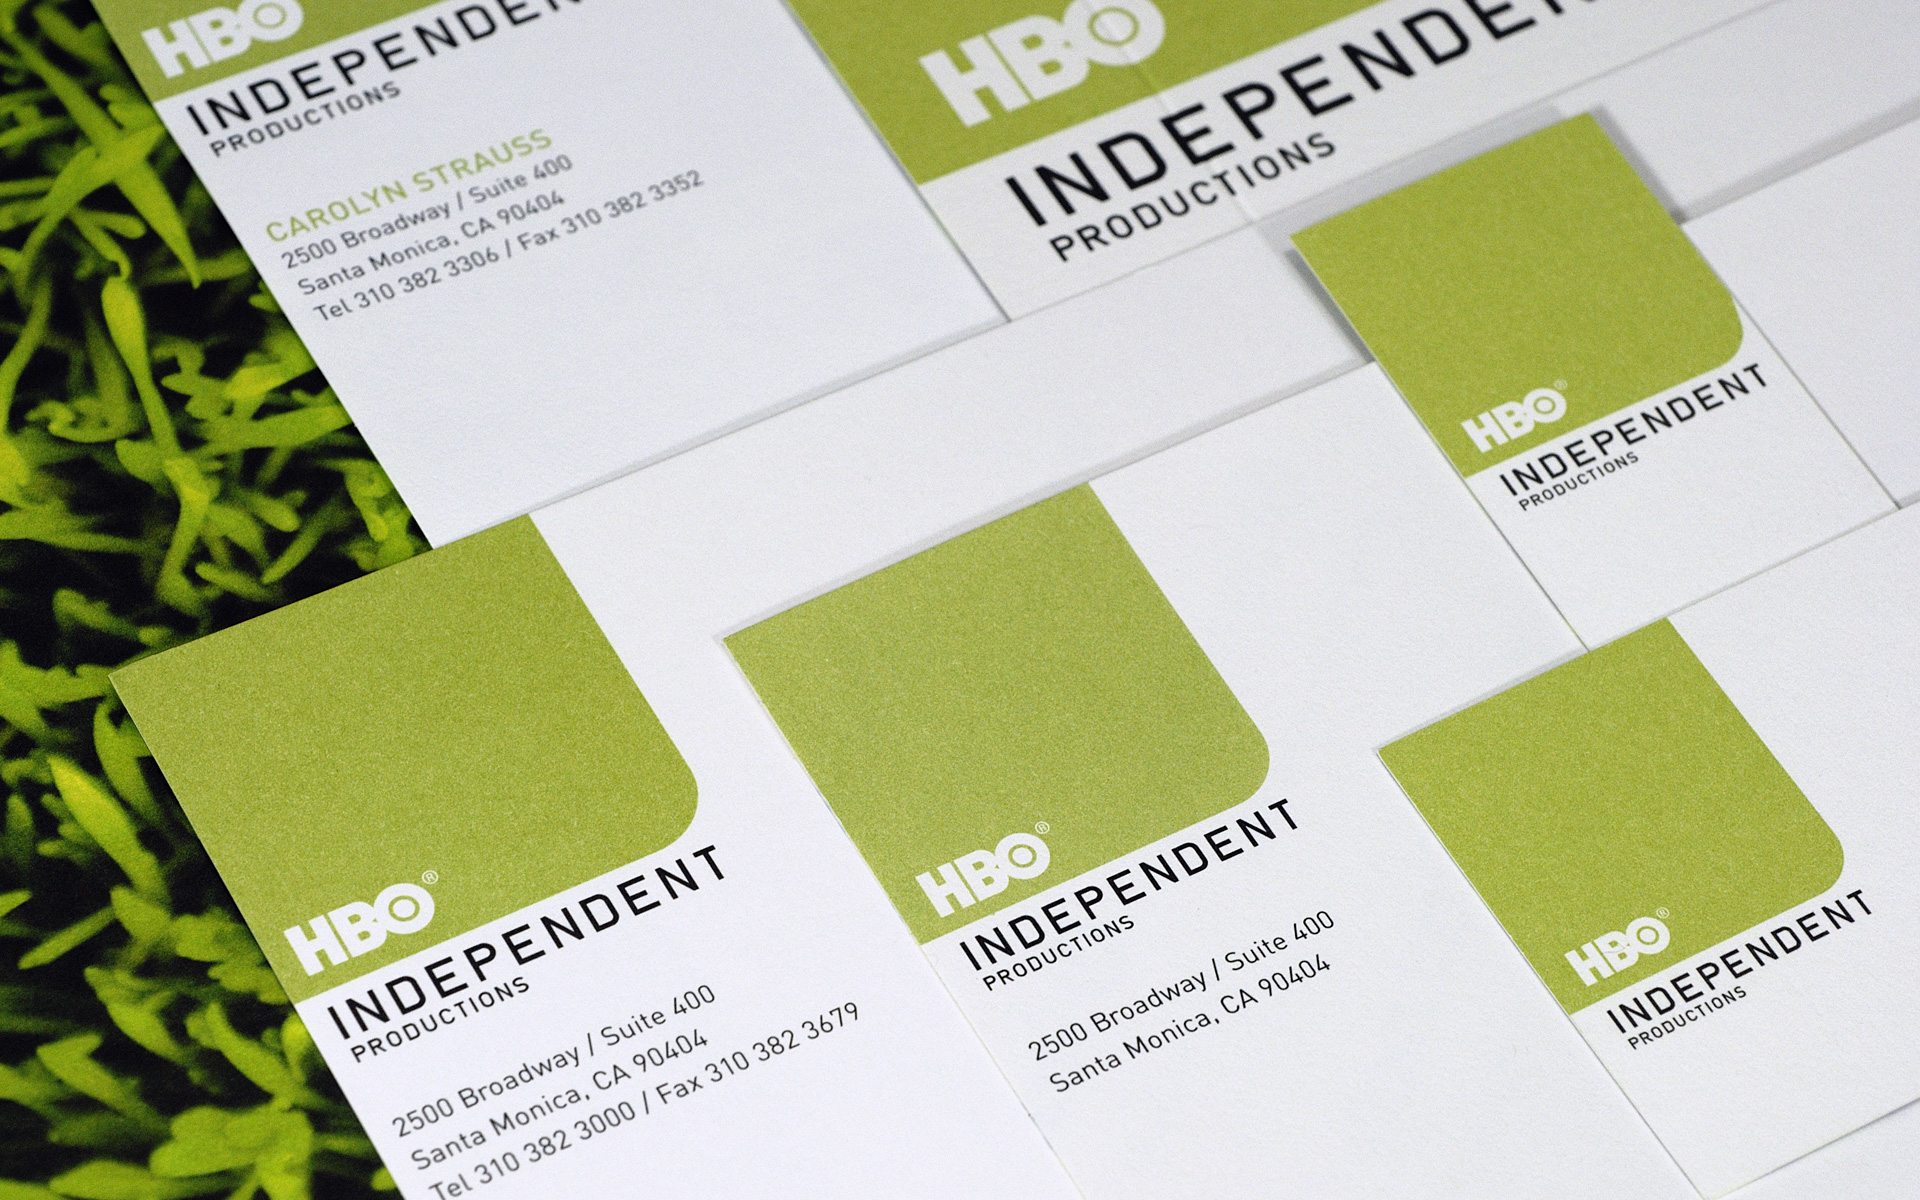 HBO_Independent_03